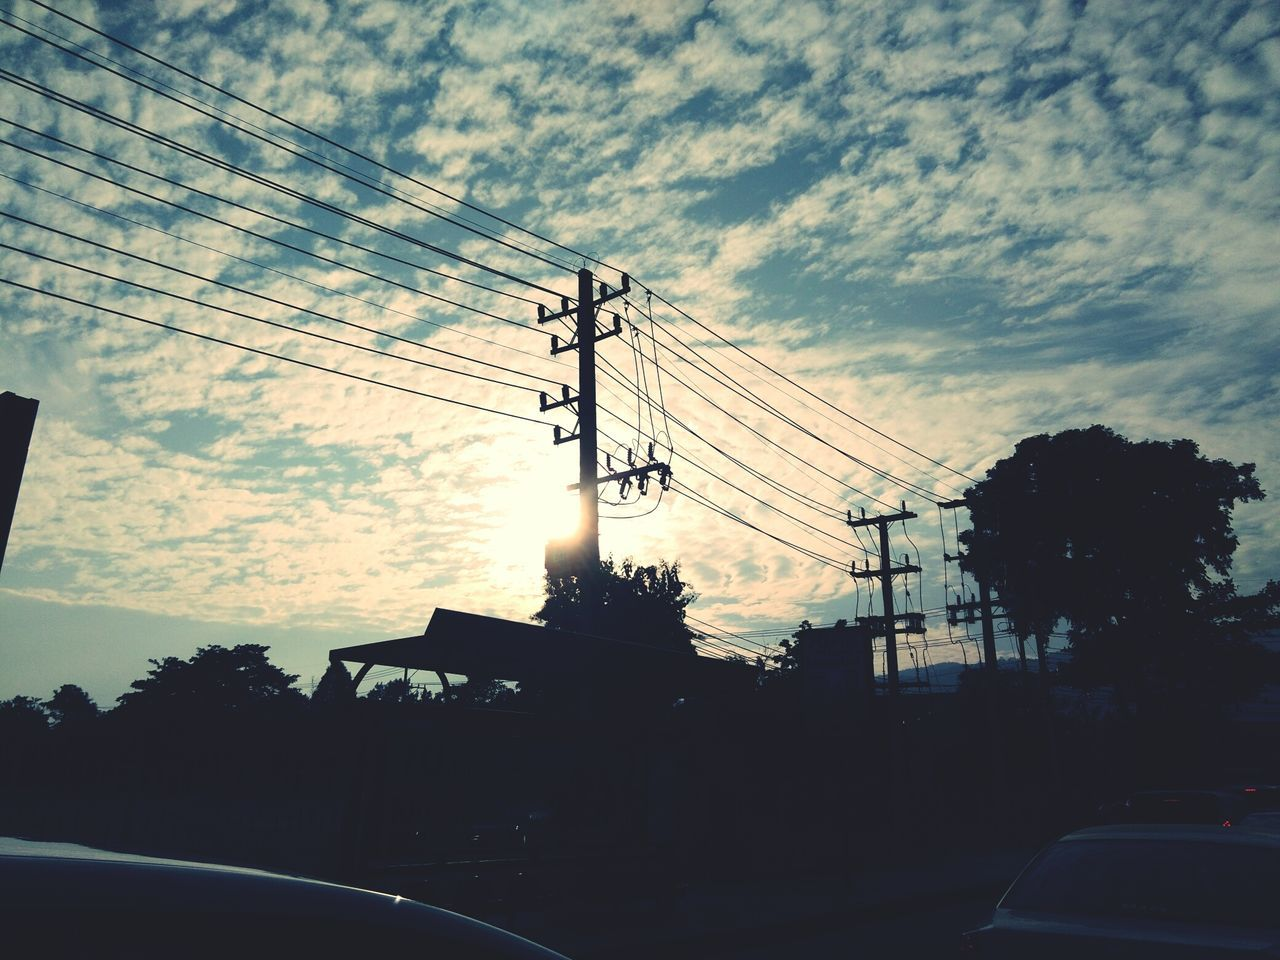 cable, sky, connection, cloud - sky, electricity pylon, silhouette, power line, electricity, car, low angle view, technology, transportation, power supply, tree, built structure, land vehicle, sunset, fuel and power generation, no people, day, outdoors, architecture, nature, telephone line